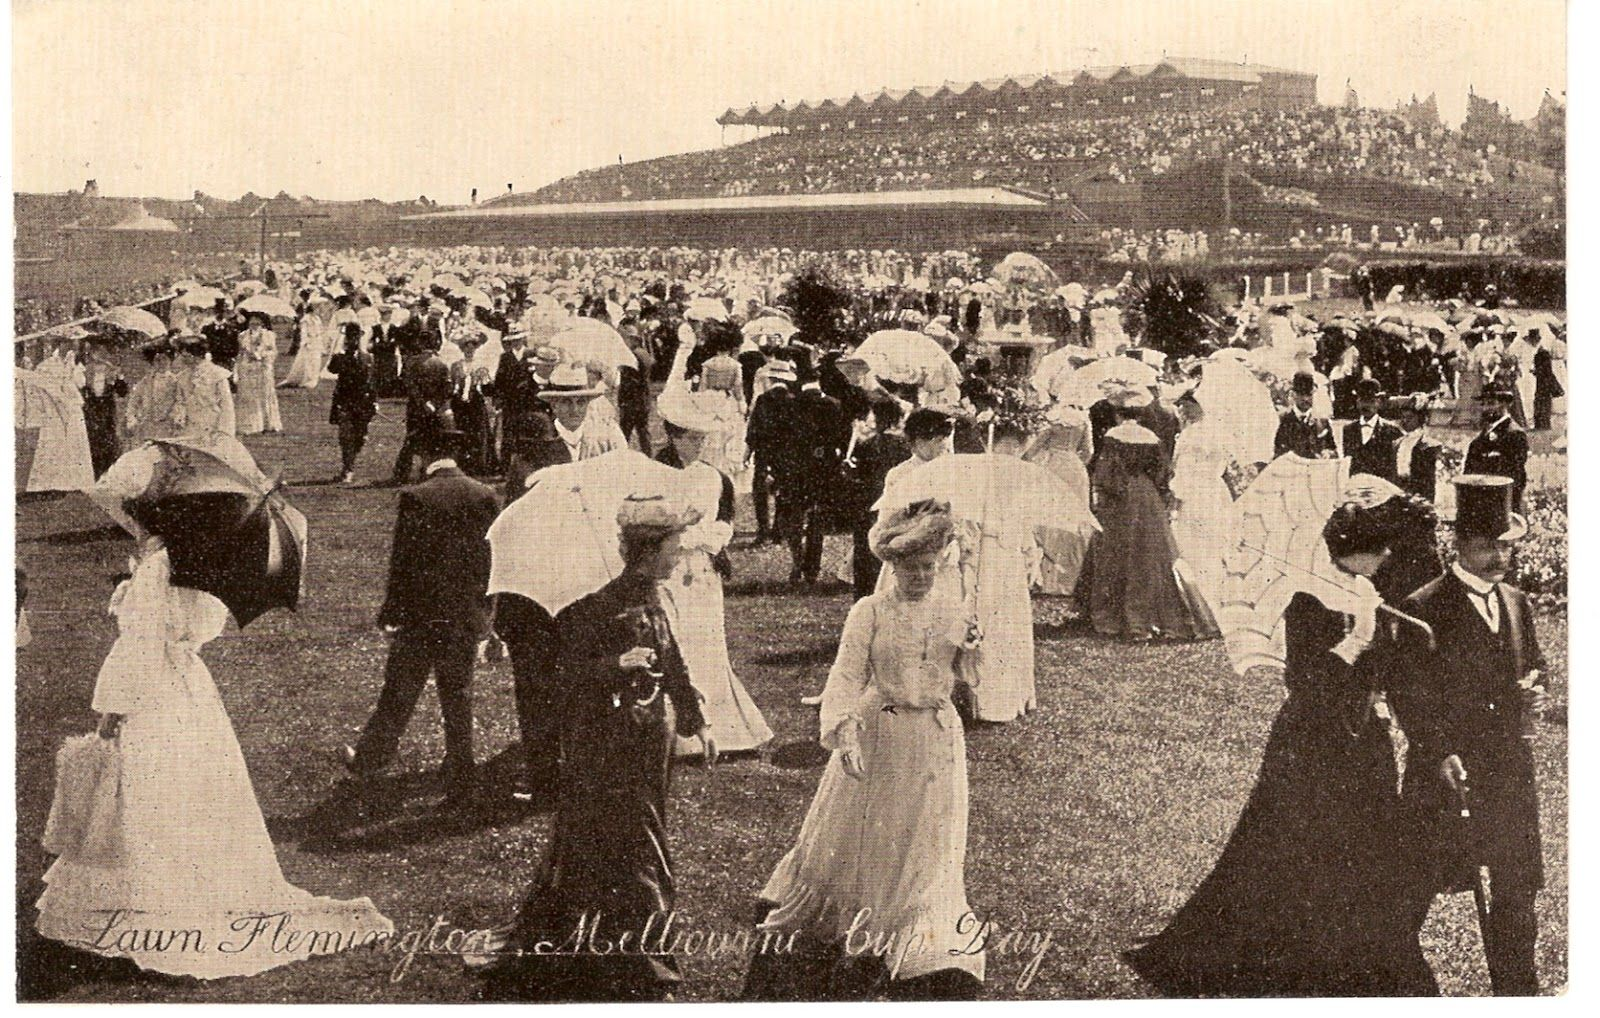 Melbourne Cup in the early 1900s